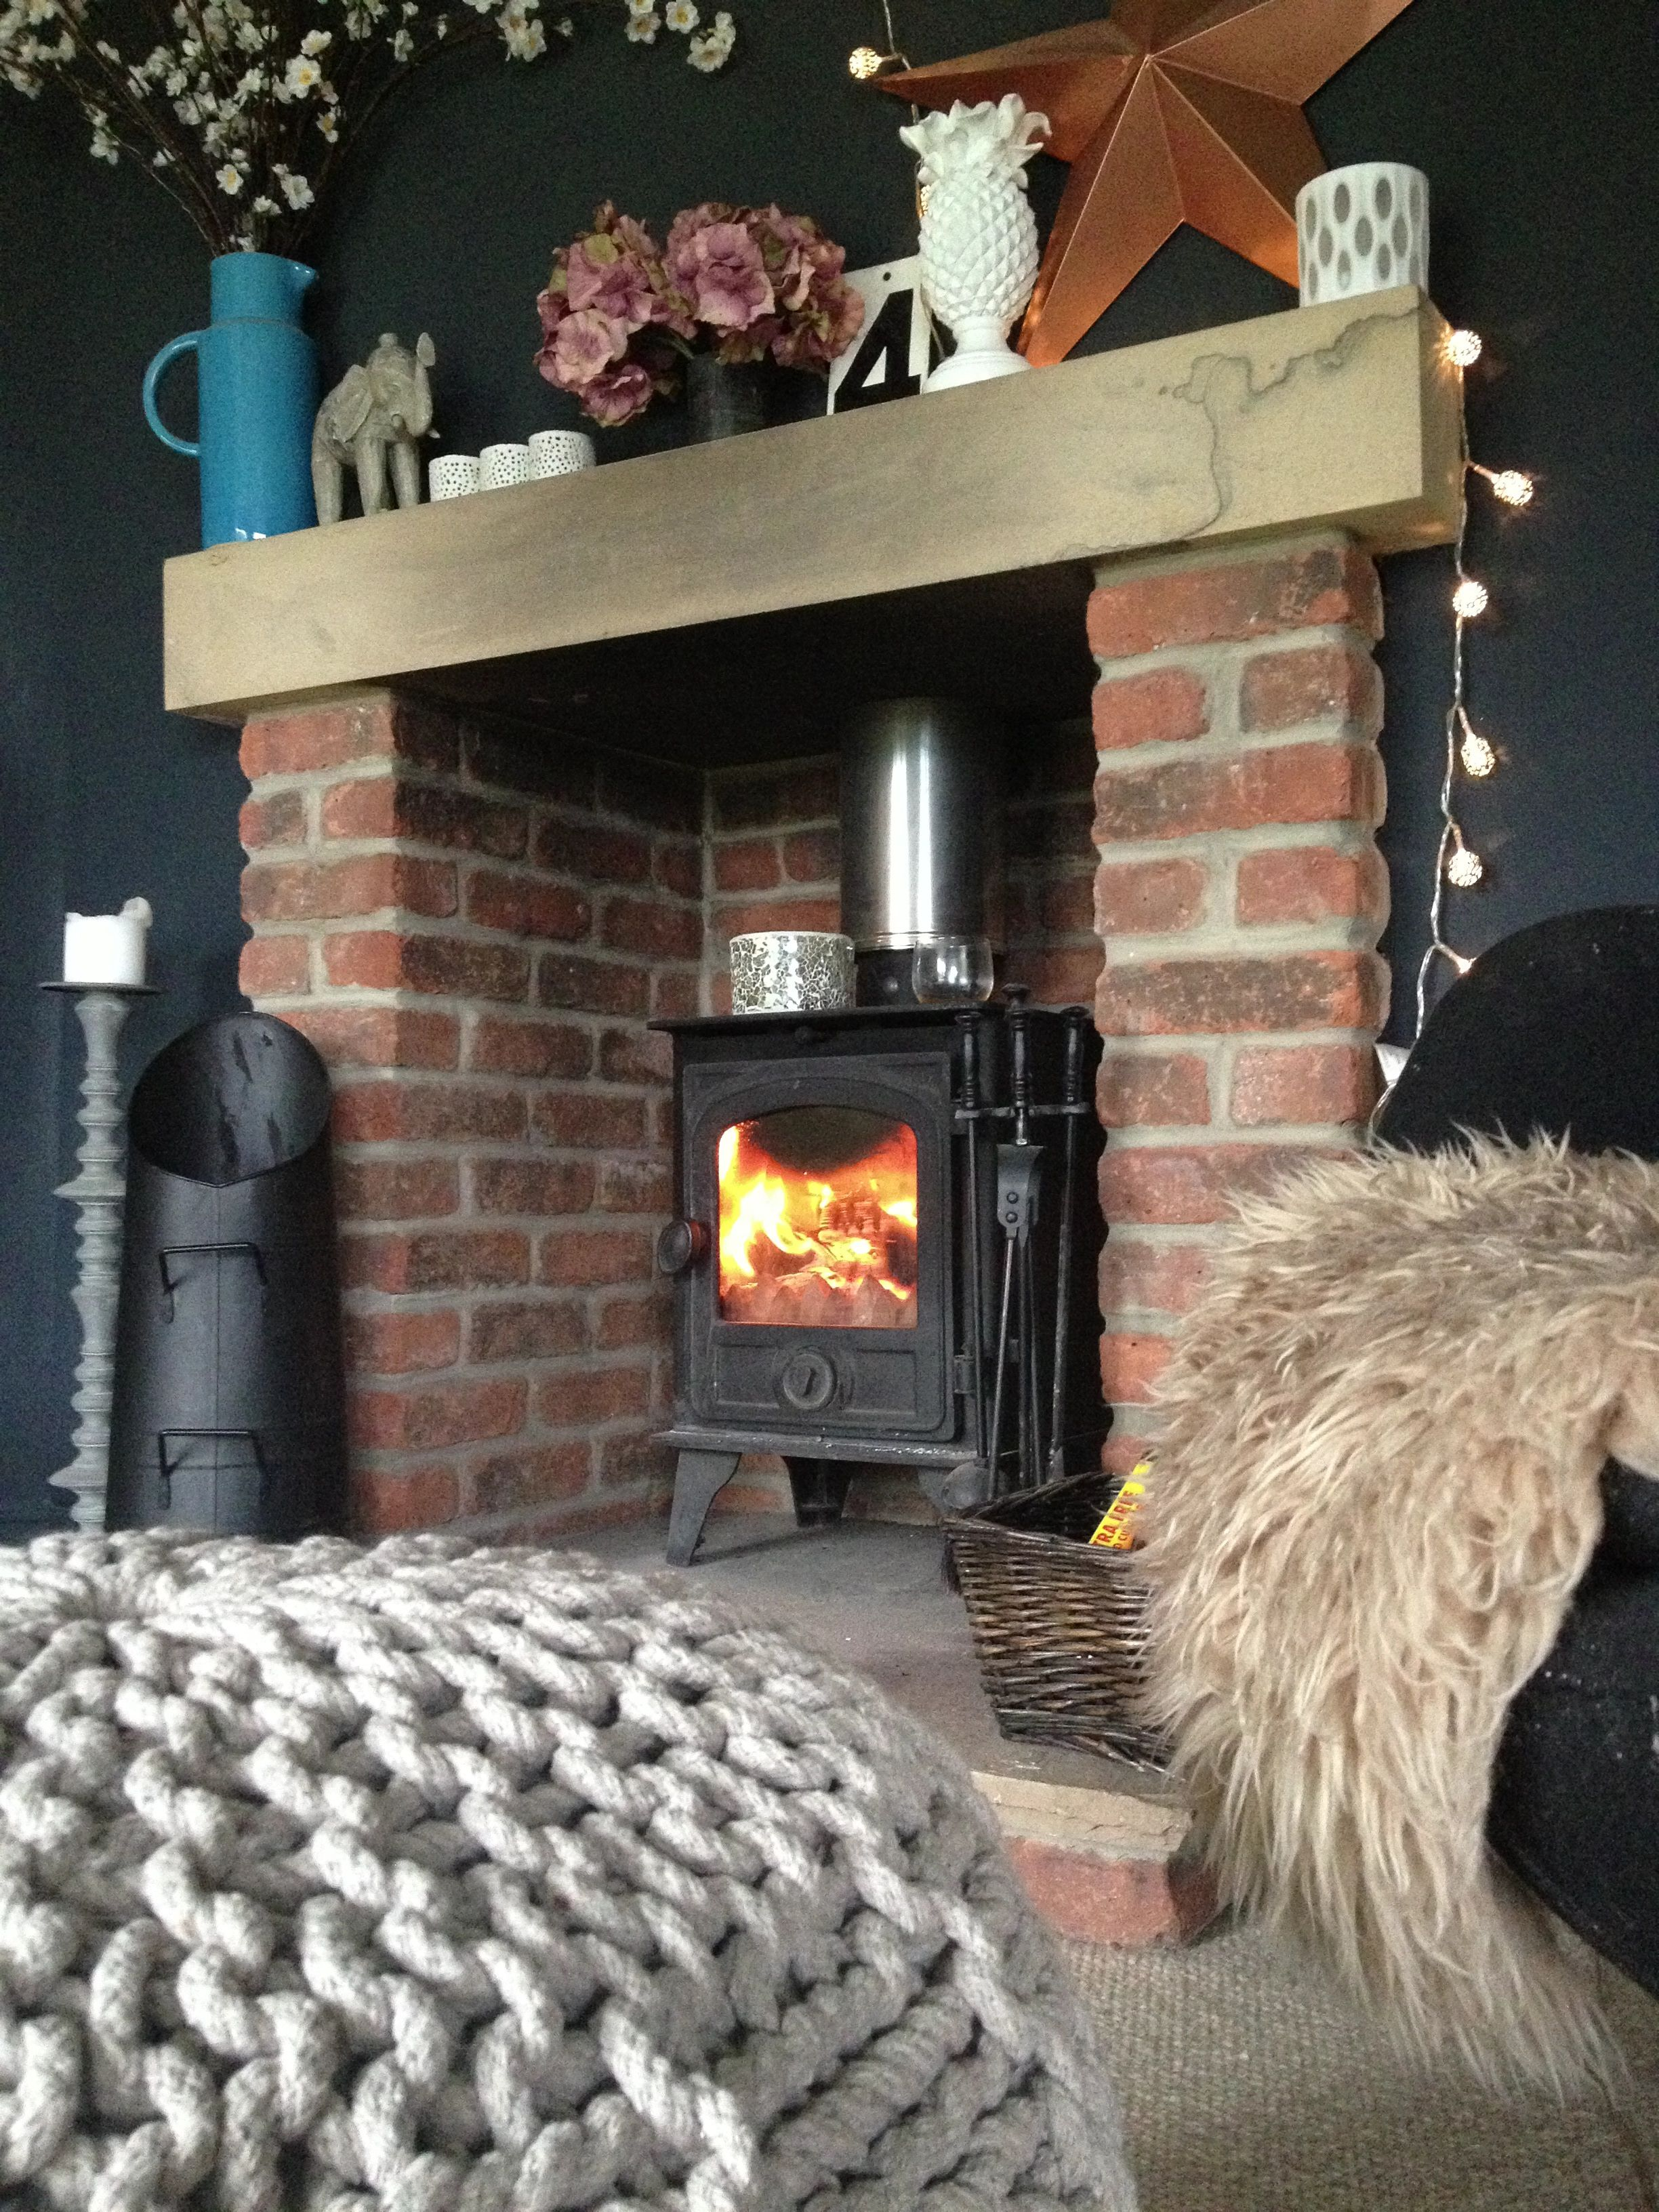 Brick stoves for summer cottages - warm and cozy